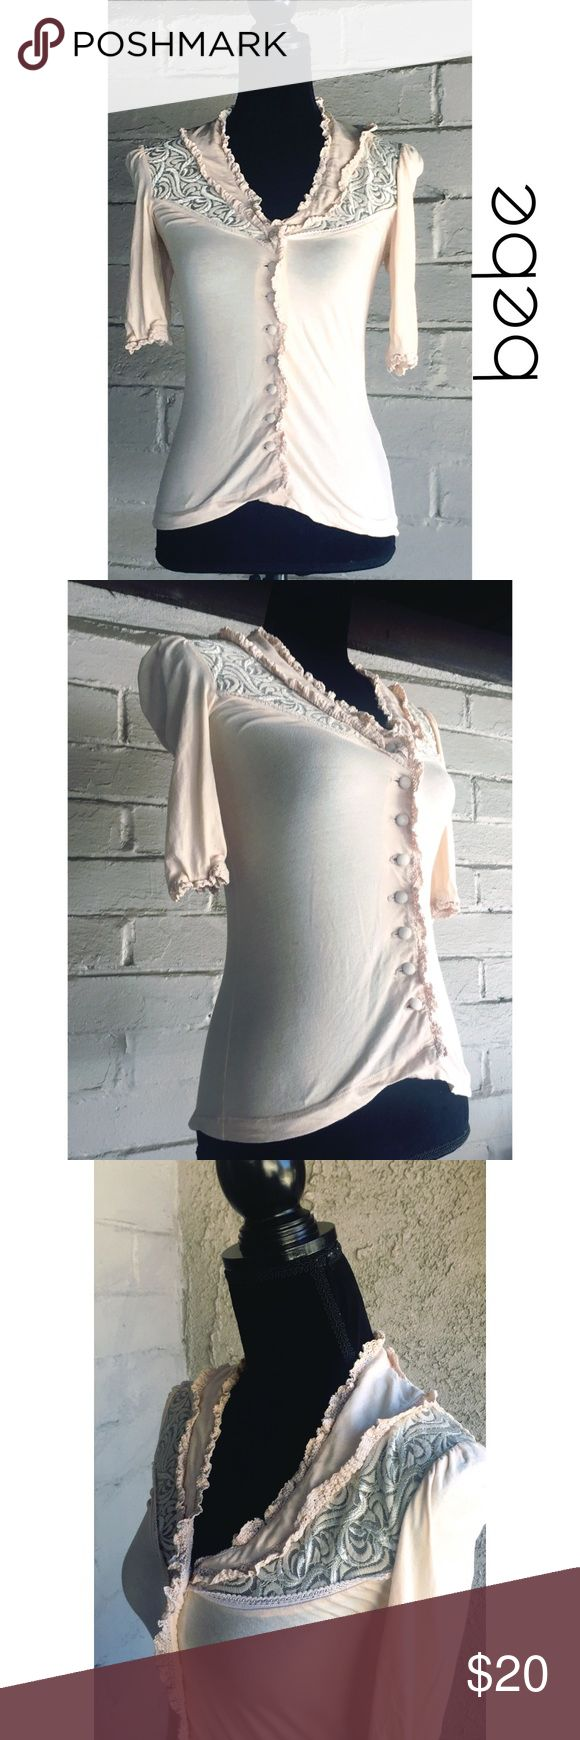 Bebe Rustic, Romantic Chic Lace Patterned Blouse Bebe Rustic, Romantic Chic Lace Patterned Blouse 🌷 Size Small 🌷 Material Is Cotton, Spandex & Nylon With Lace Pattern At Top 🌷 Color Is Light Antique Pink bebe Tops Blouses